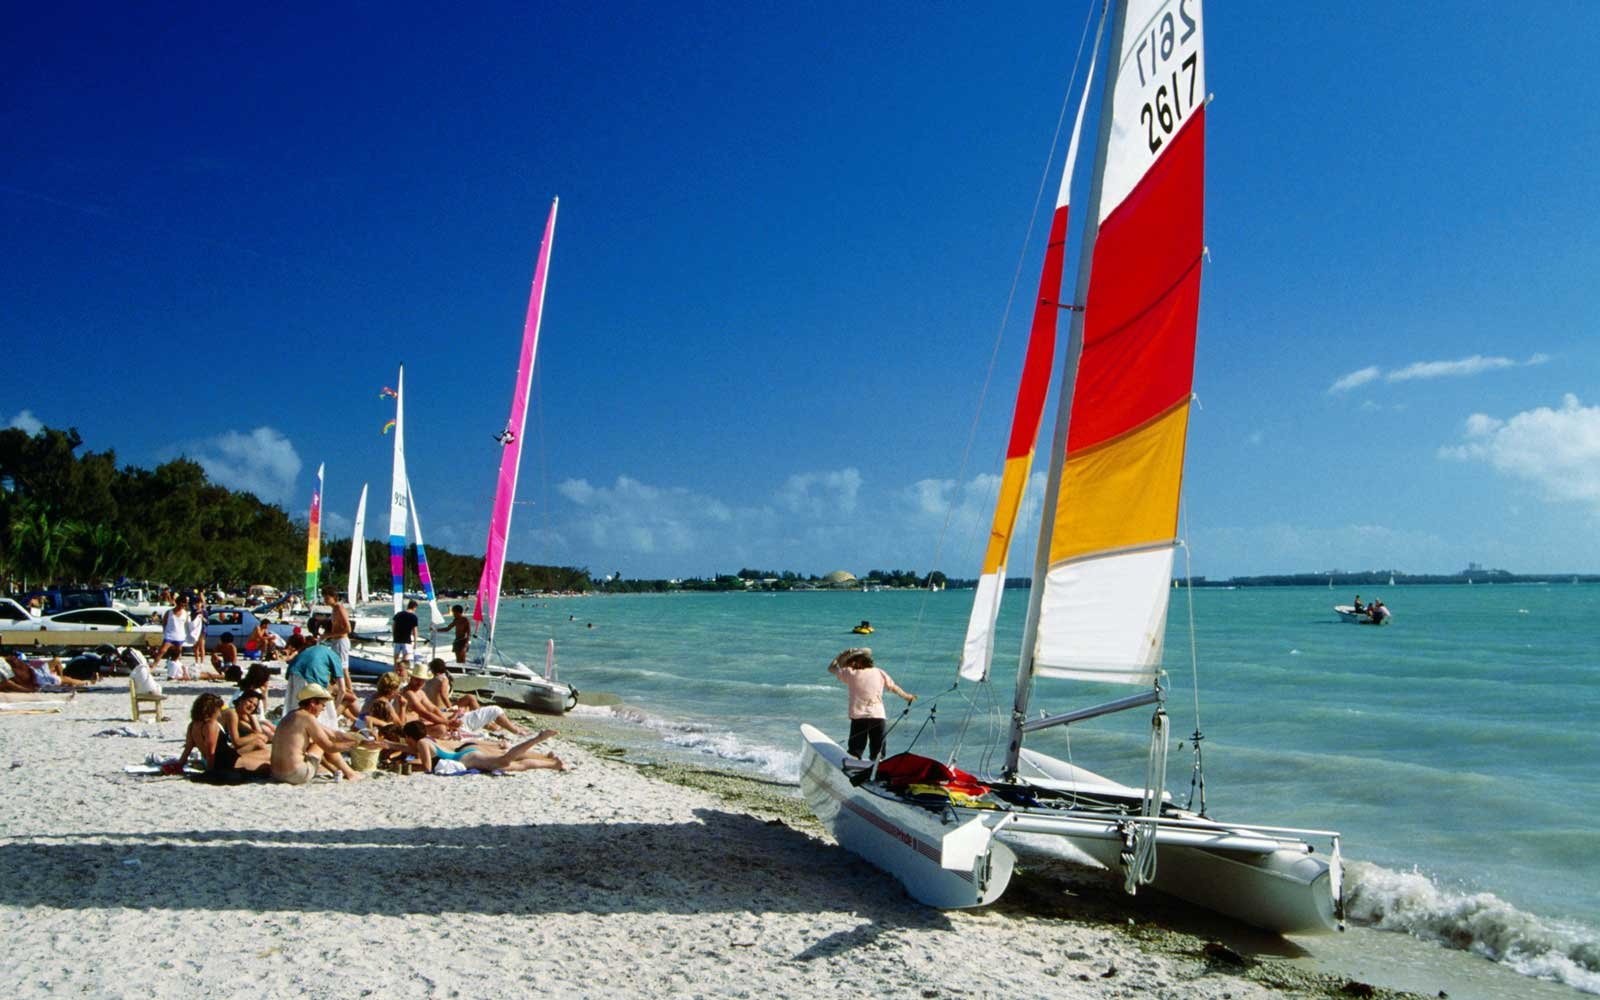 Boats on beach, Virginia Key, Florida